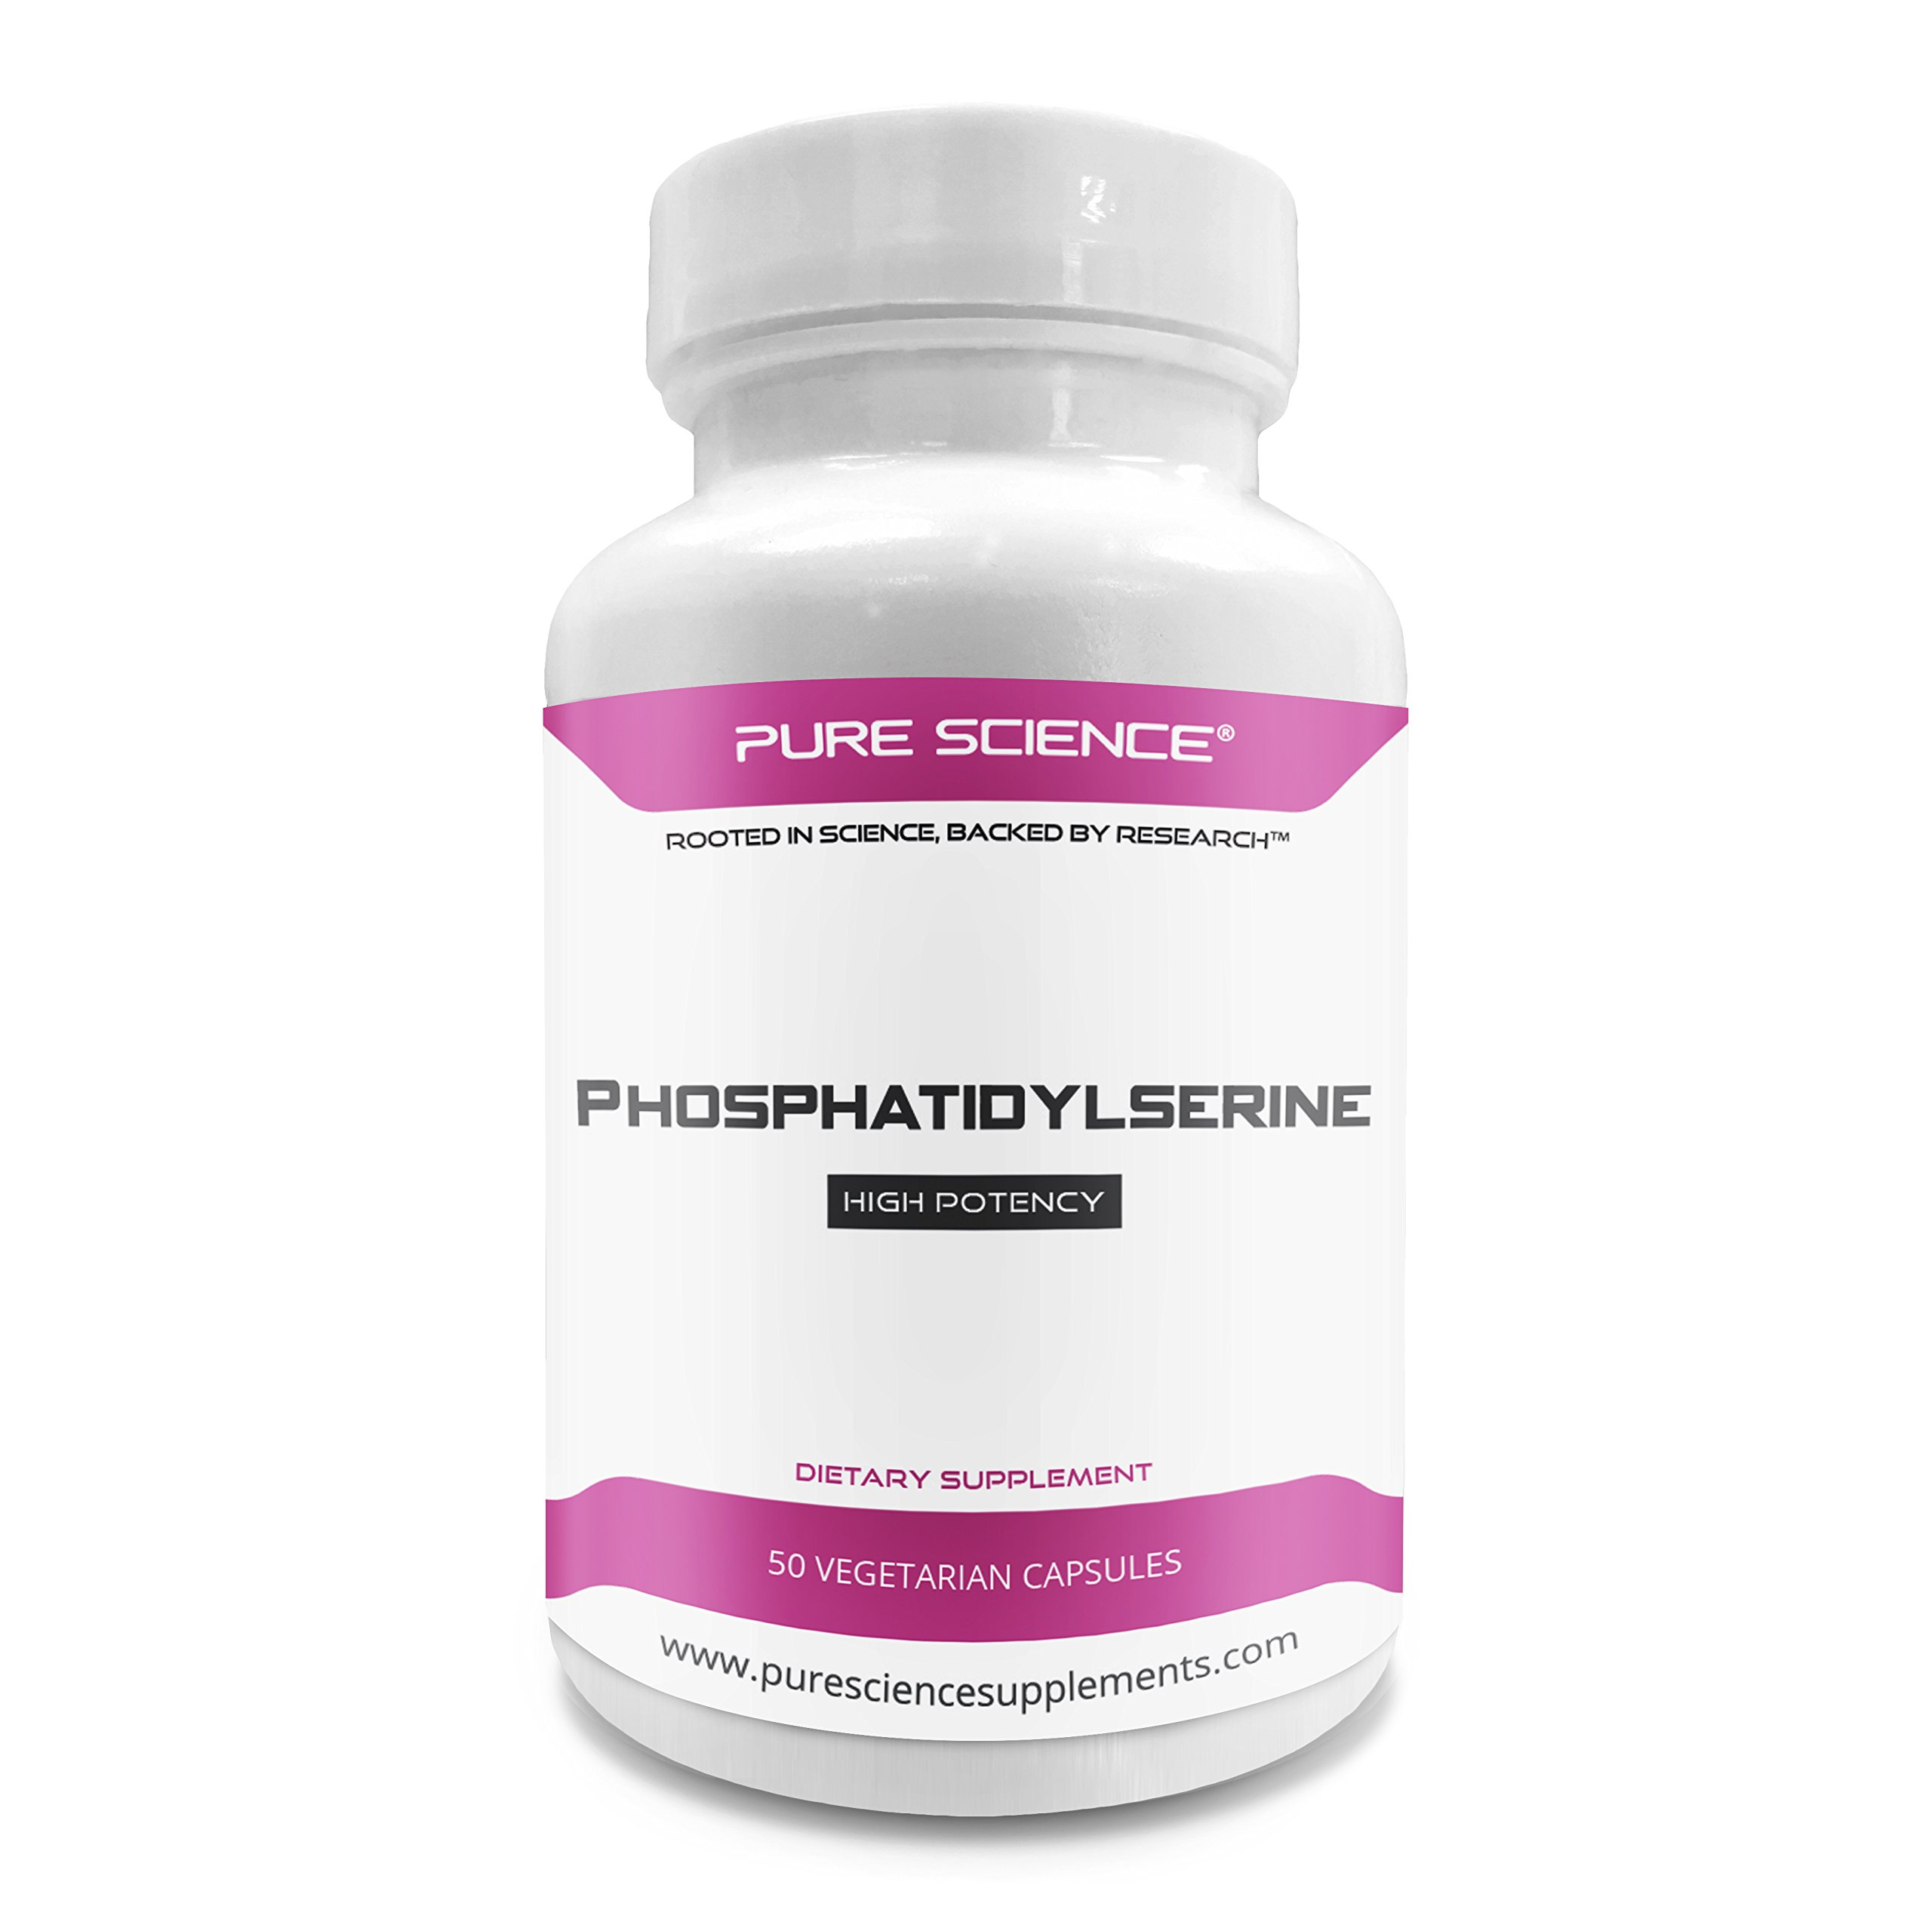 Pure Science Phosphatidylserine 100mg (From Soy Lecithin) - Essential Brain Nutrient for Improving Learning & Cognition and Reducing Cortisol - 50 Vegetarian Capsules of Phosphatidylserine Powder